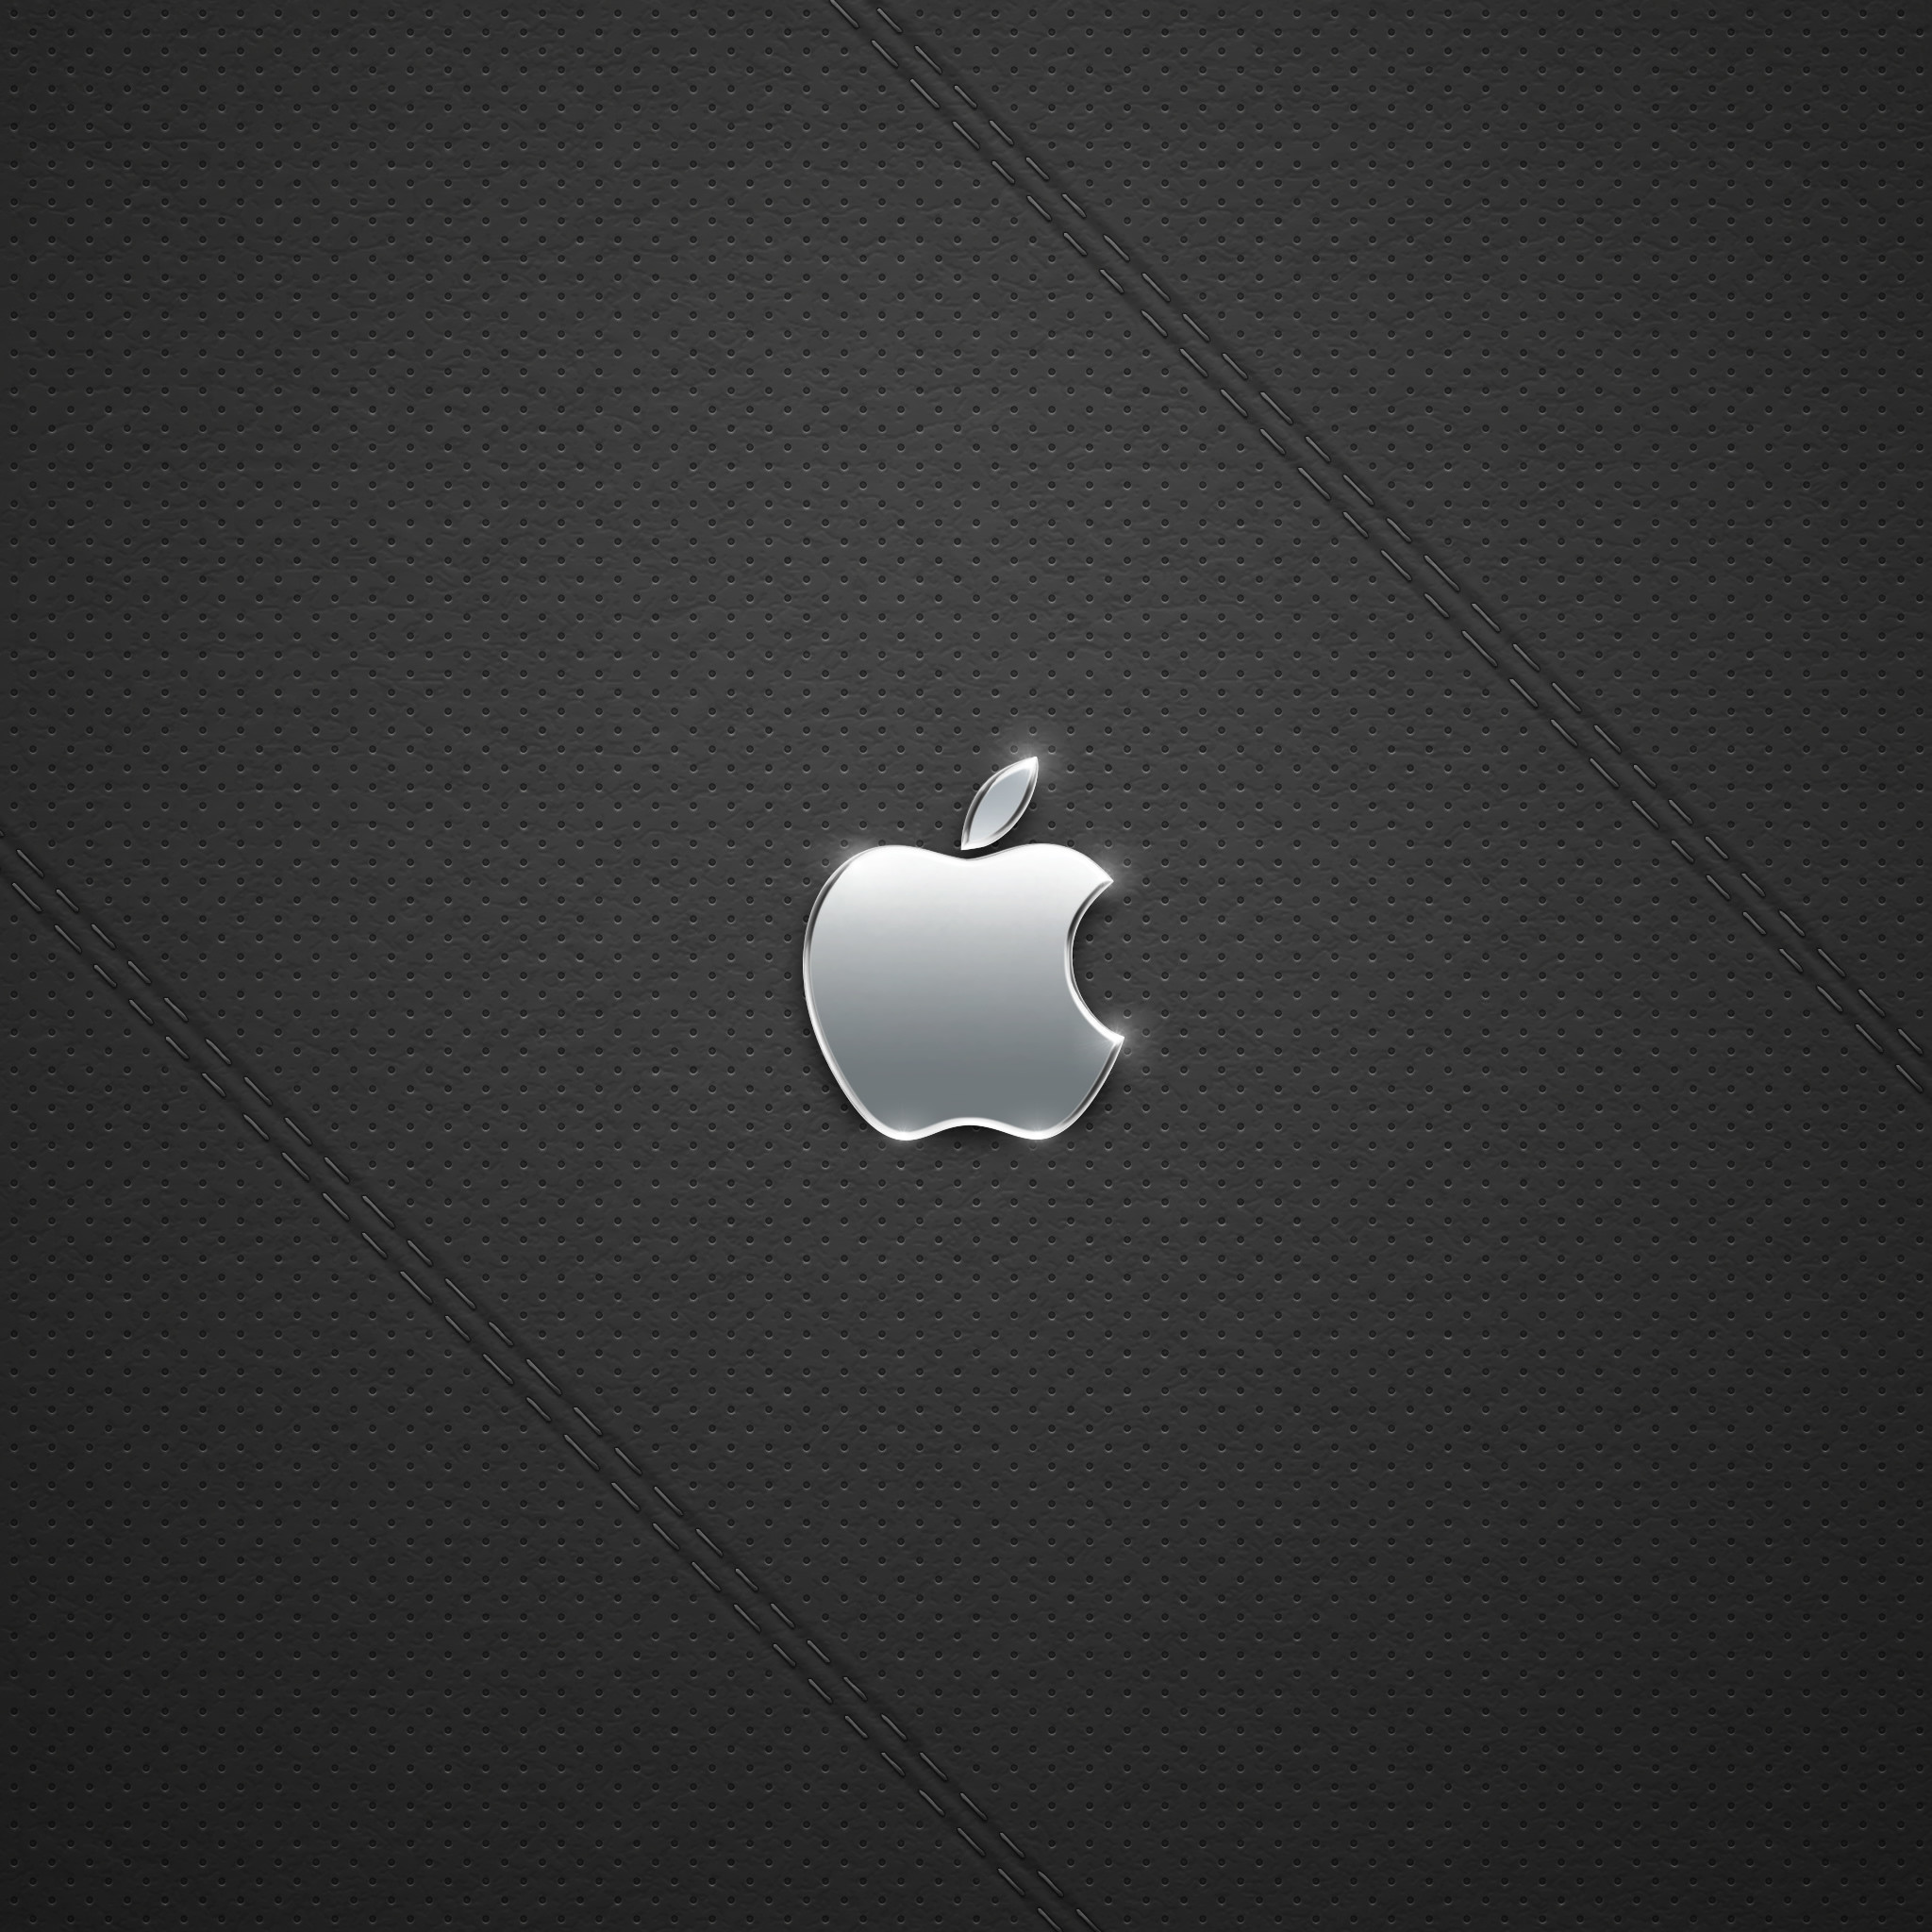 2048x2048 16495 21: Black Leather Logo iPad wallpaper